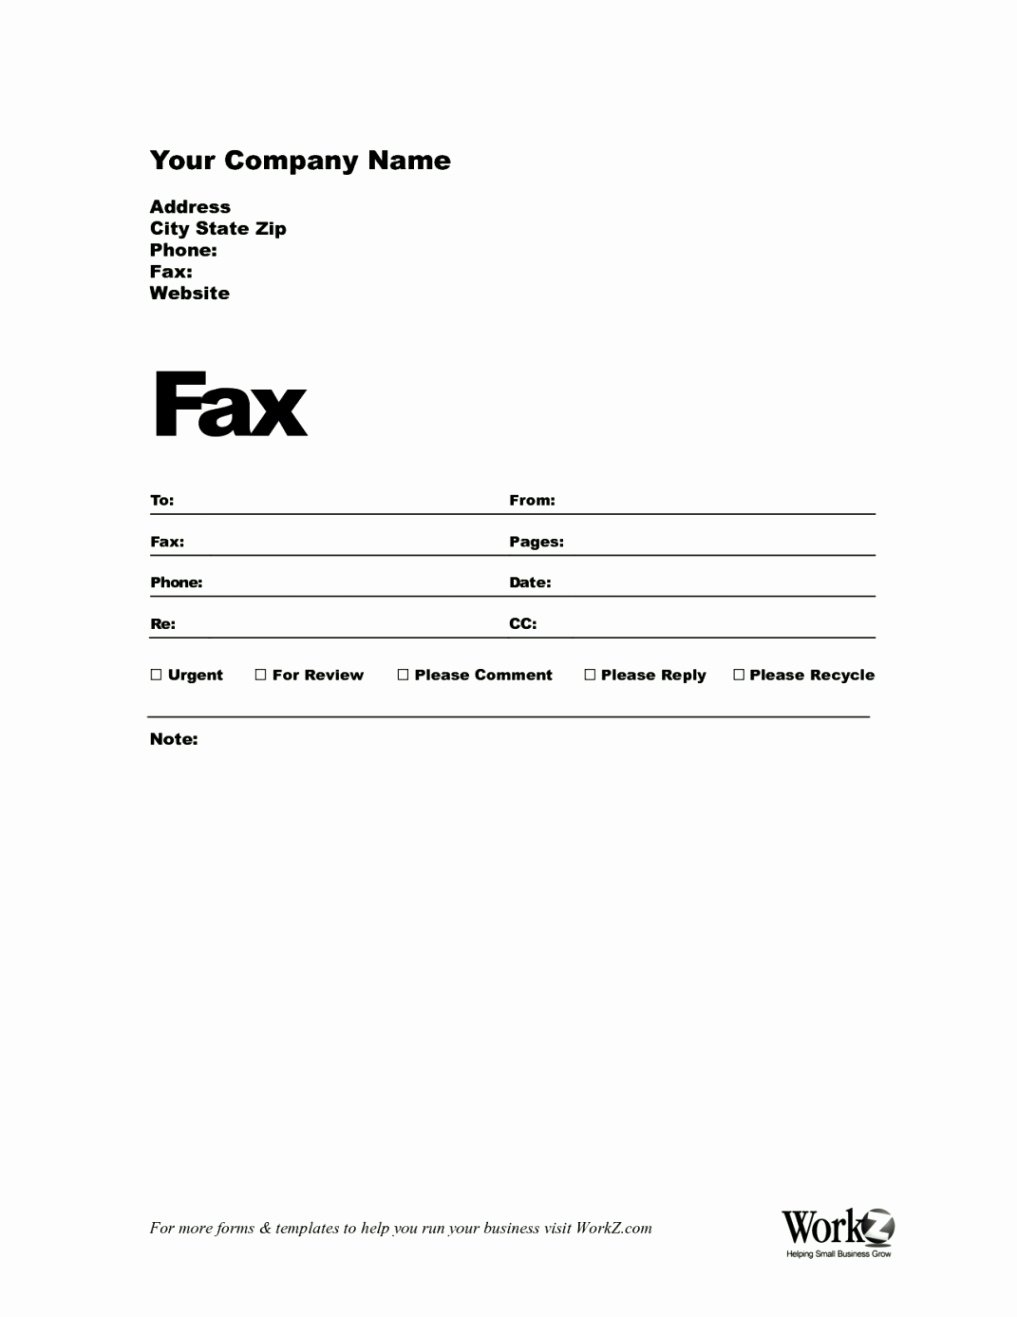 Blank Fax Cover Page Fresh Blank Fax Cover Sheet Template Update234 Template